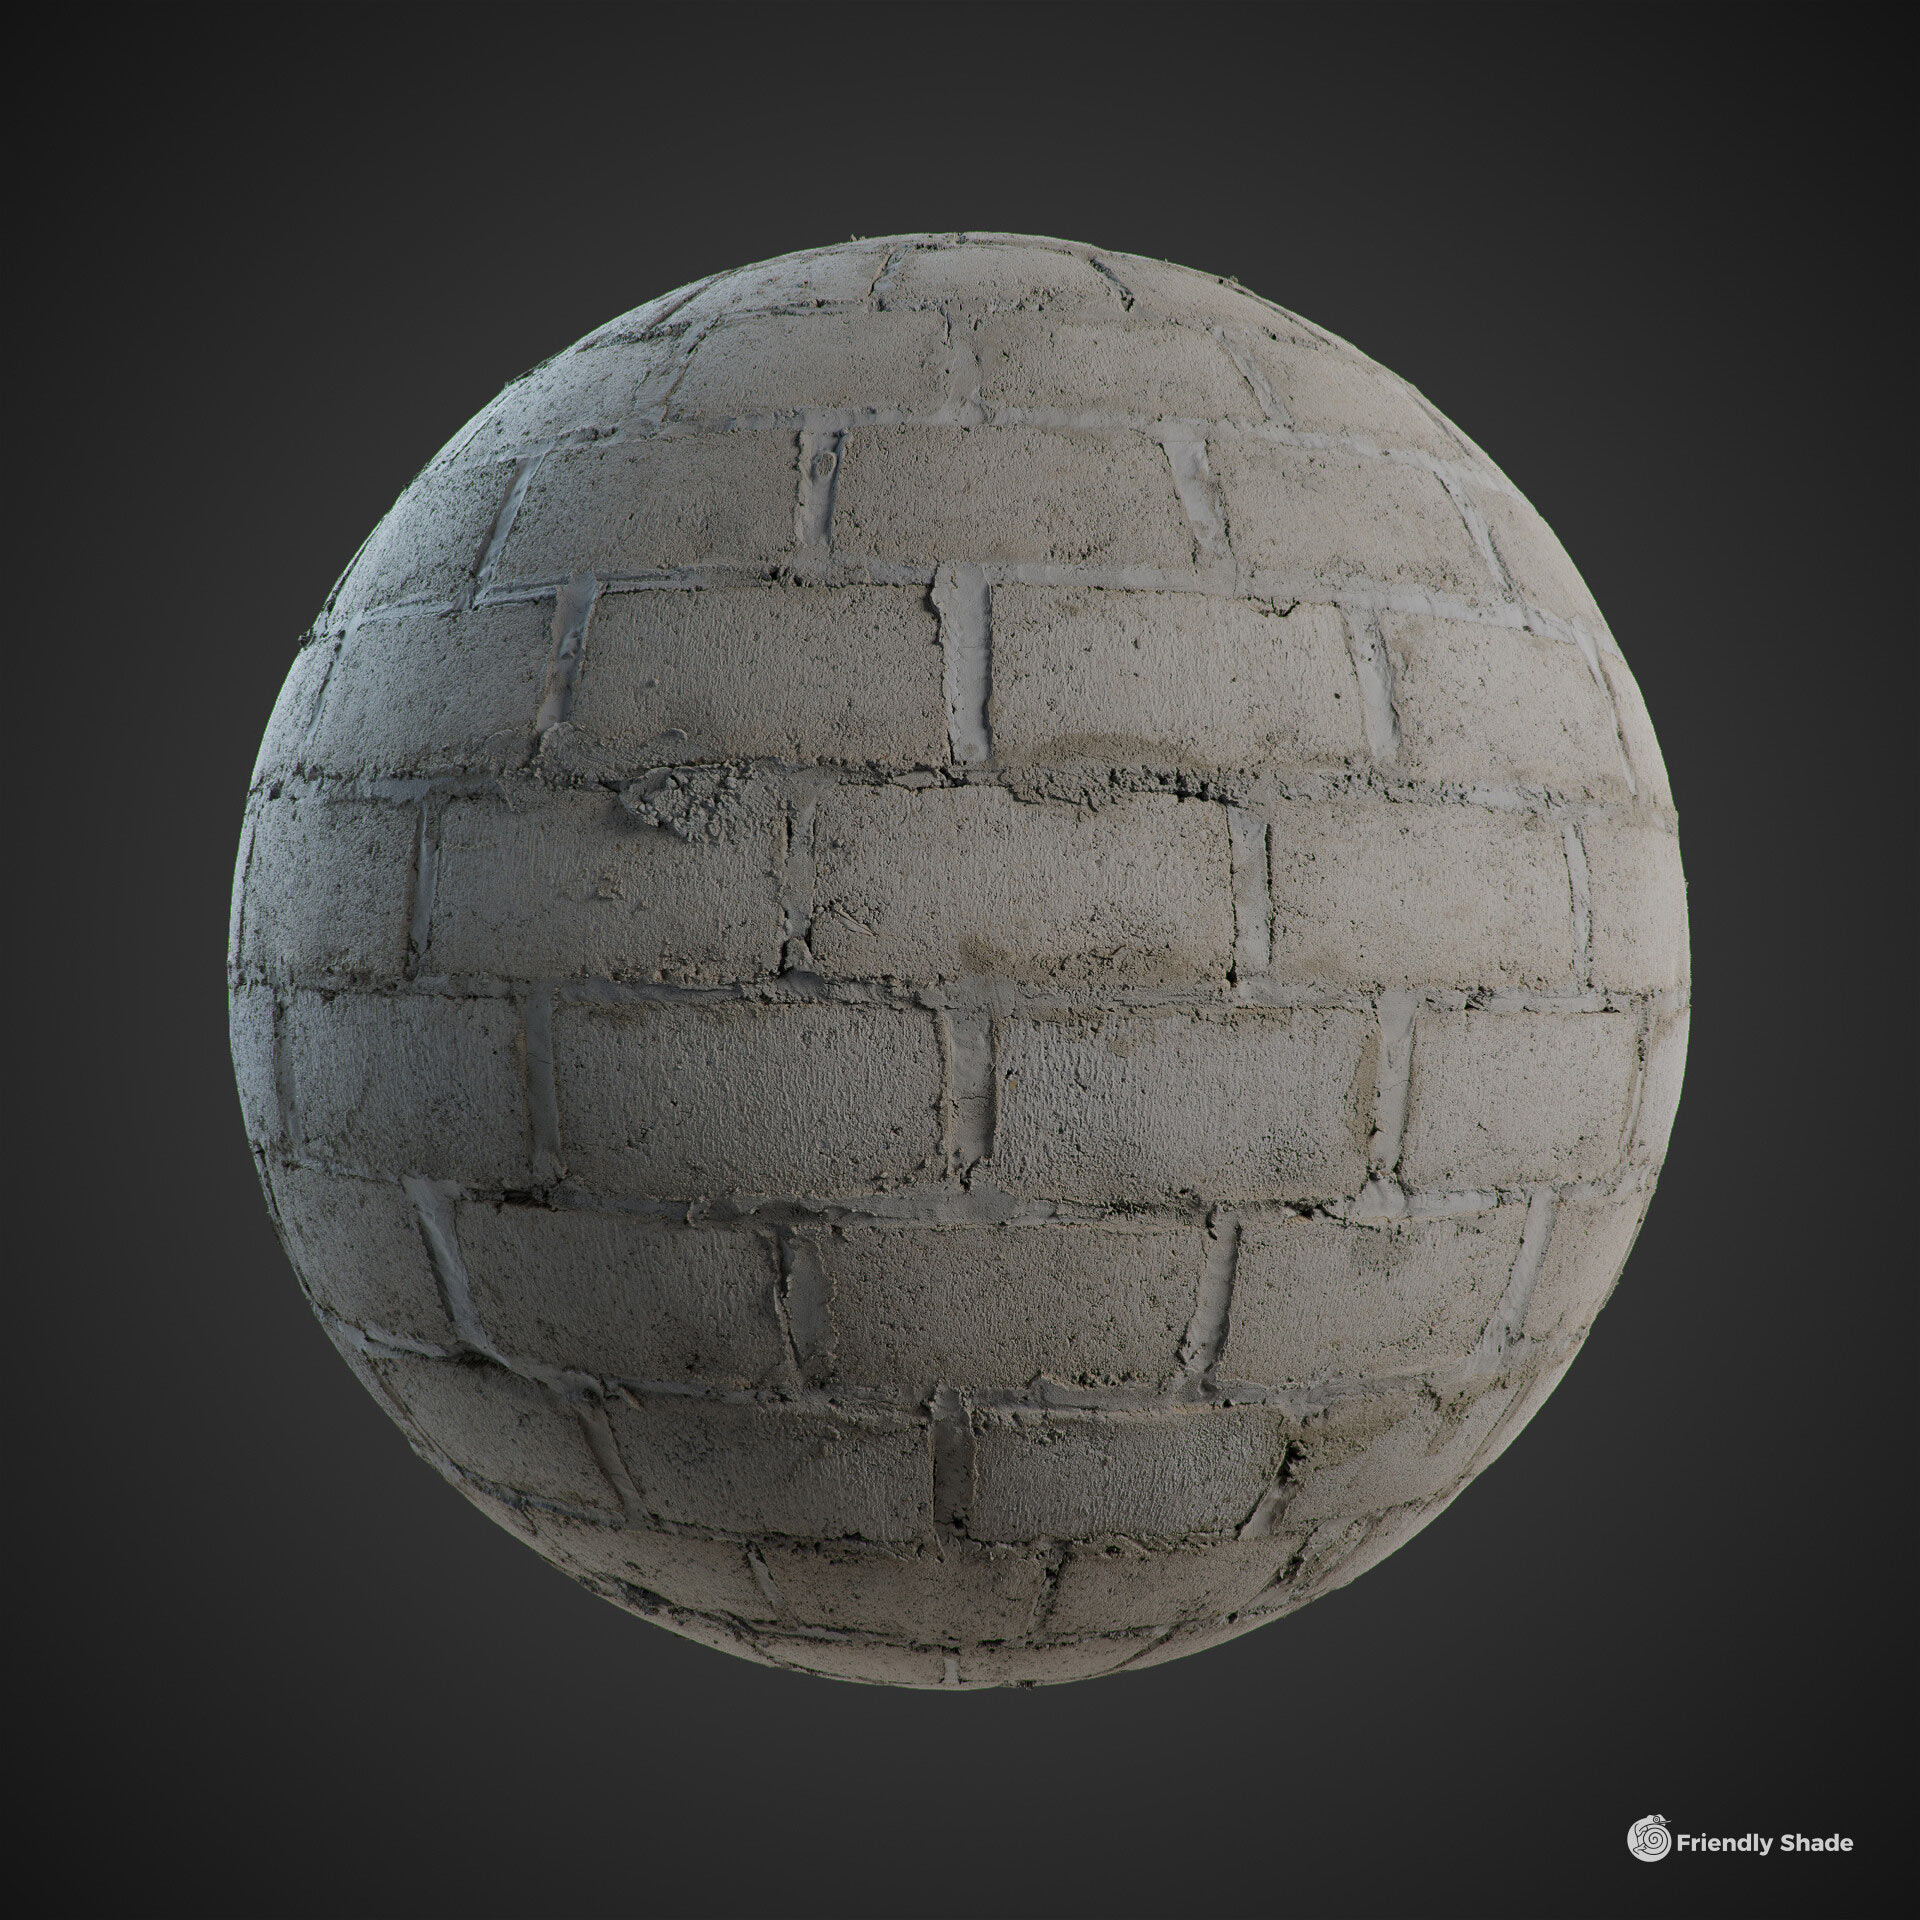 The image shows a sphere with the sloppy blocks texture